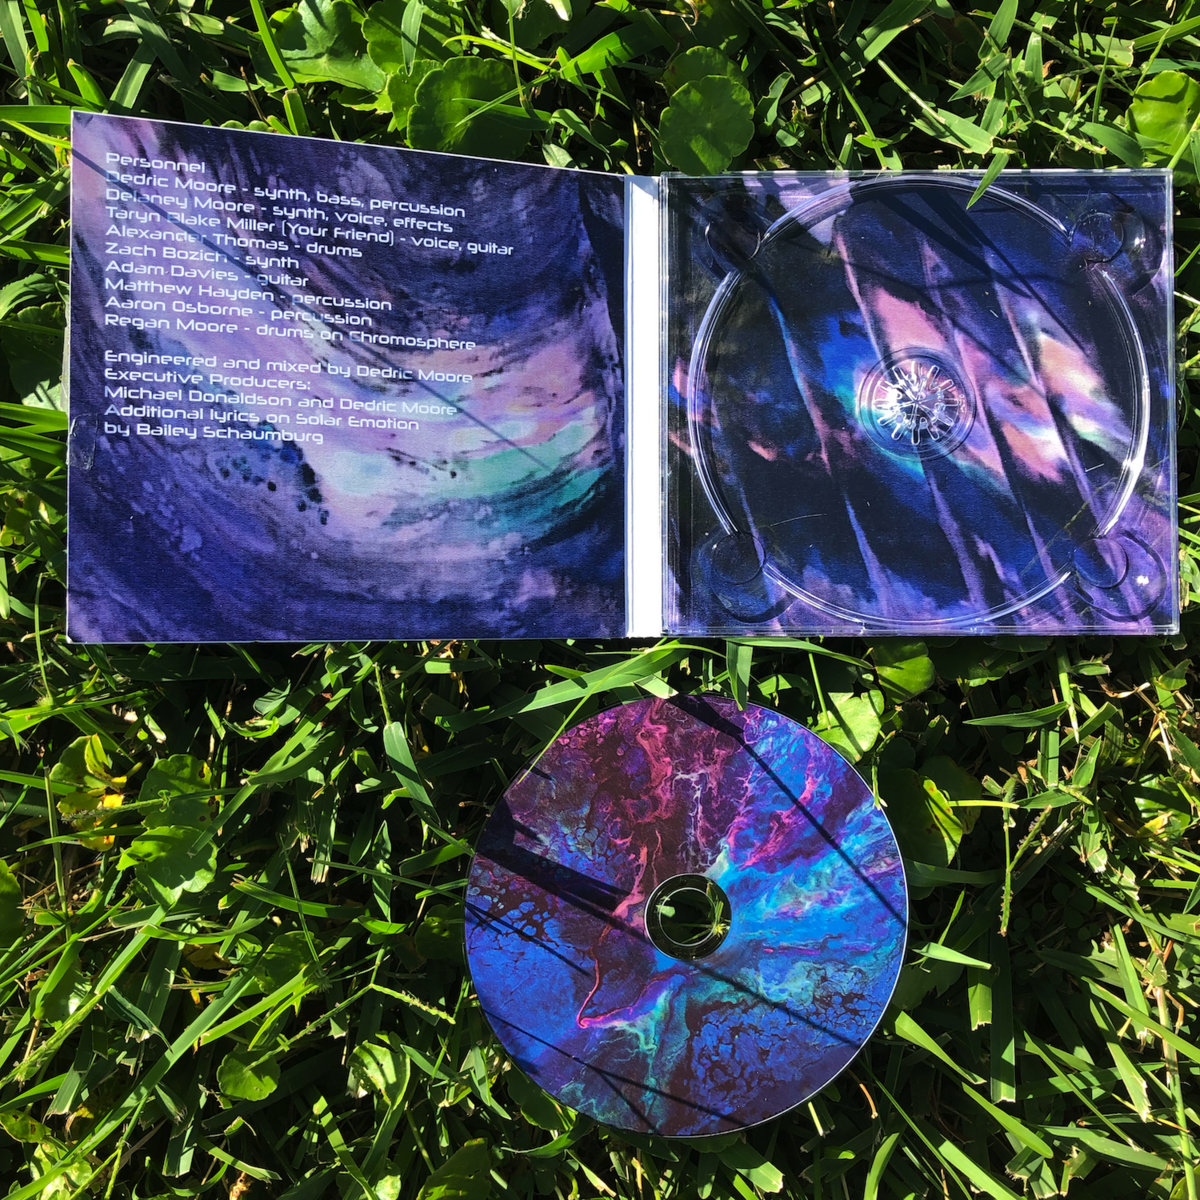 d064c035c Now available in futuristic compact disc format